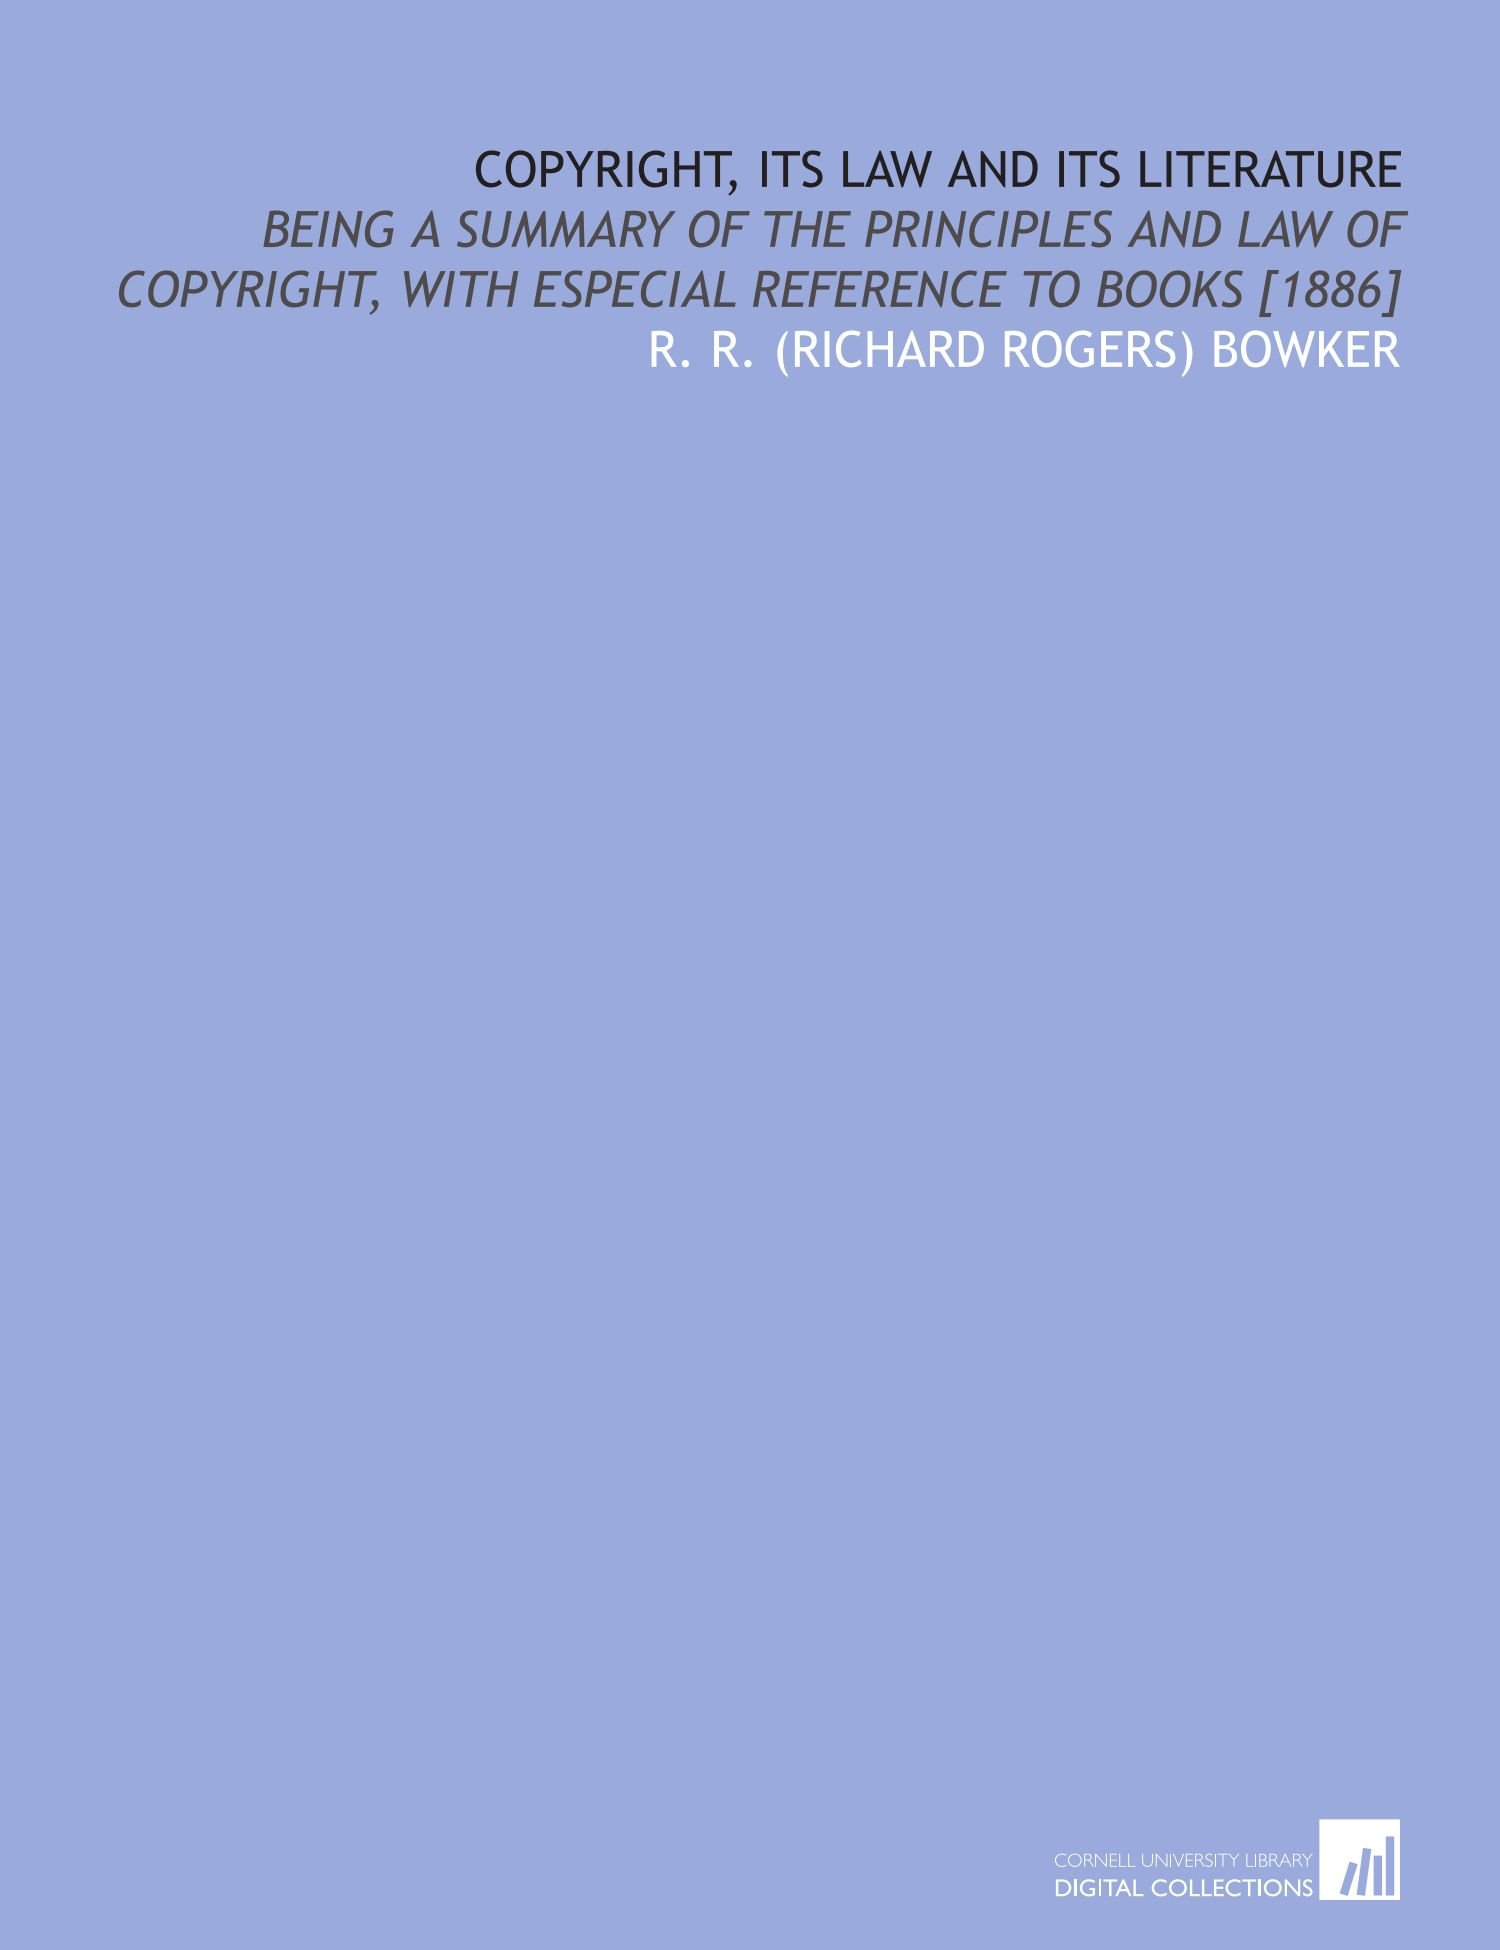 cover for book Copyright, its law and its literature